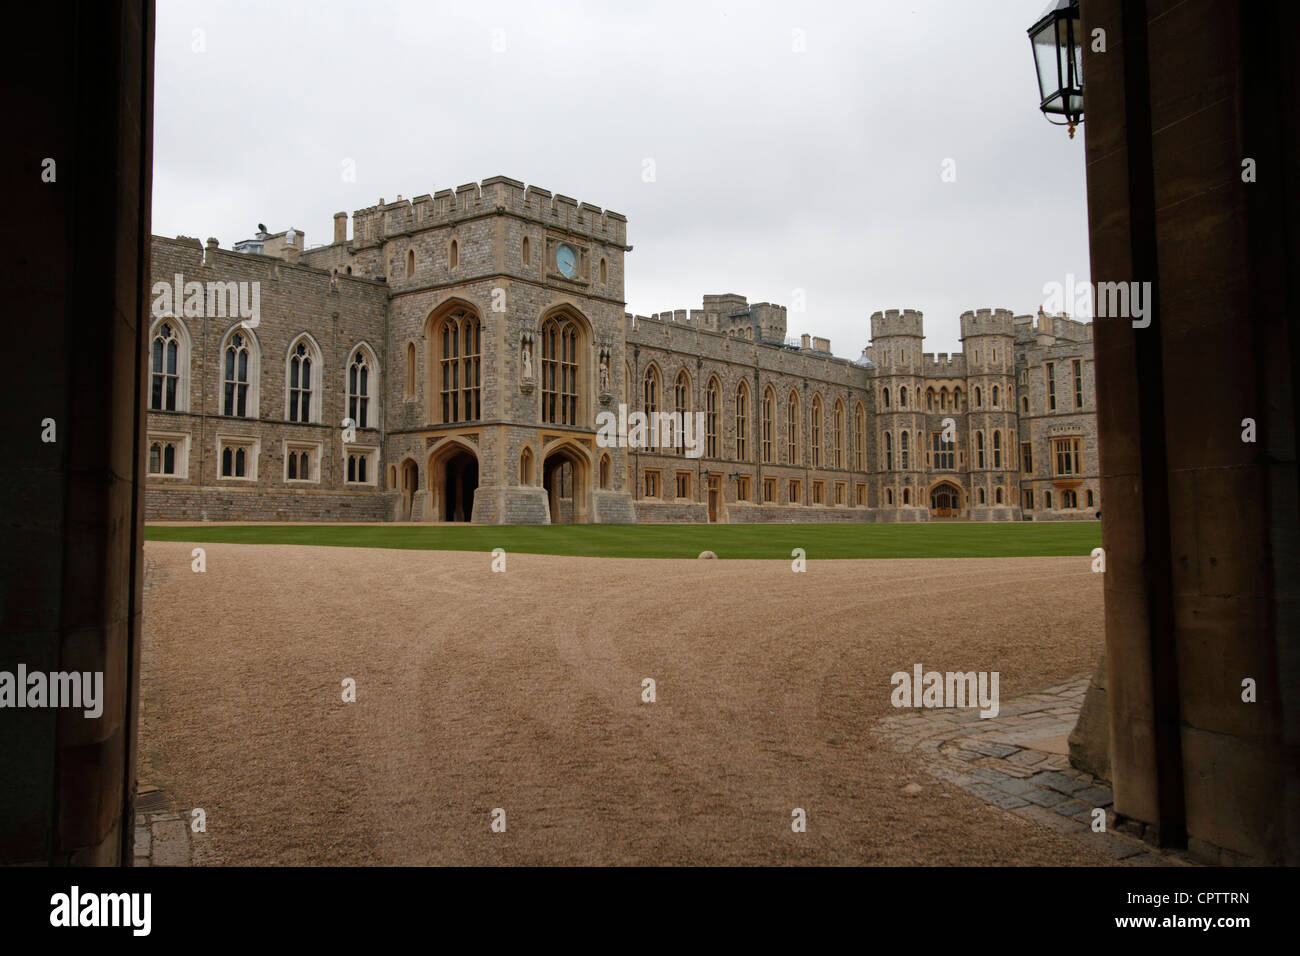 Windsor castle - The Upper Ward State Apartments - Stock Image